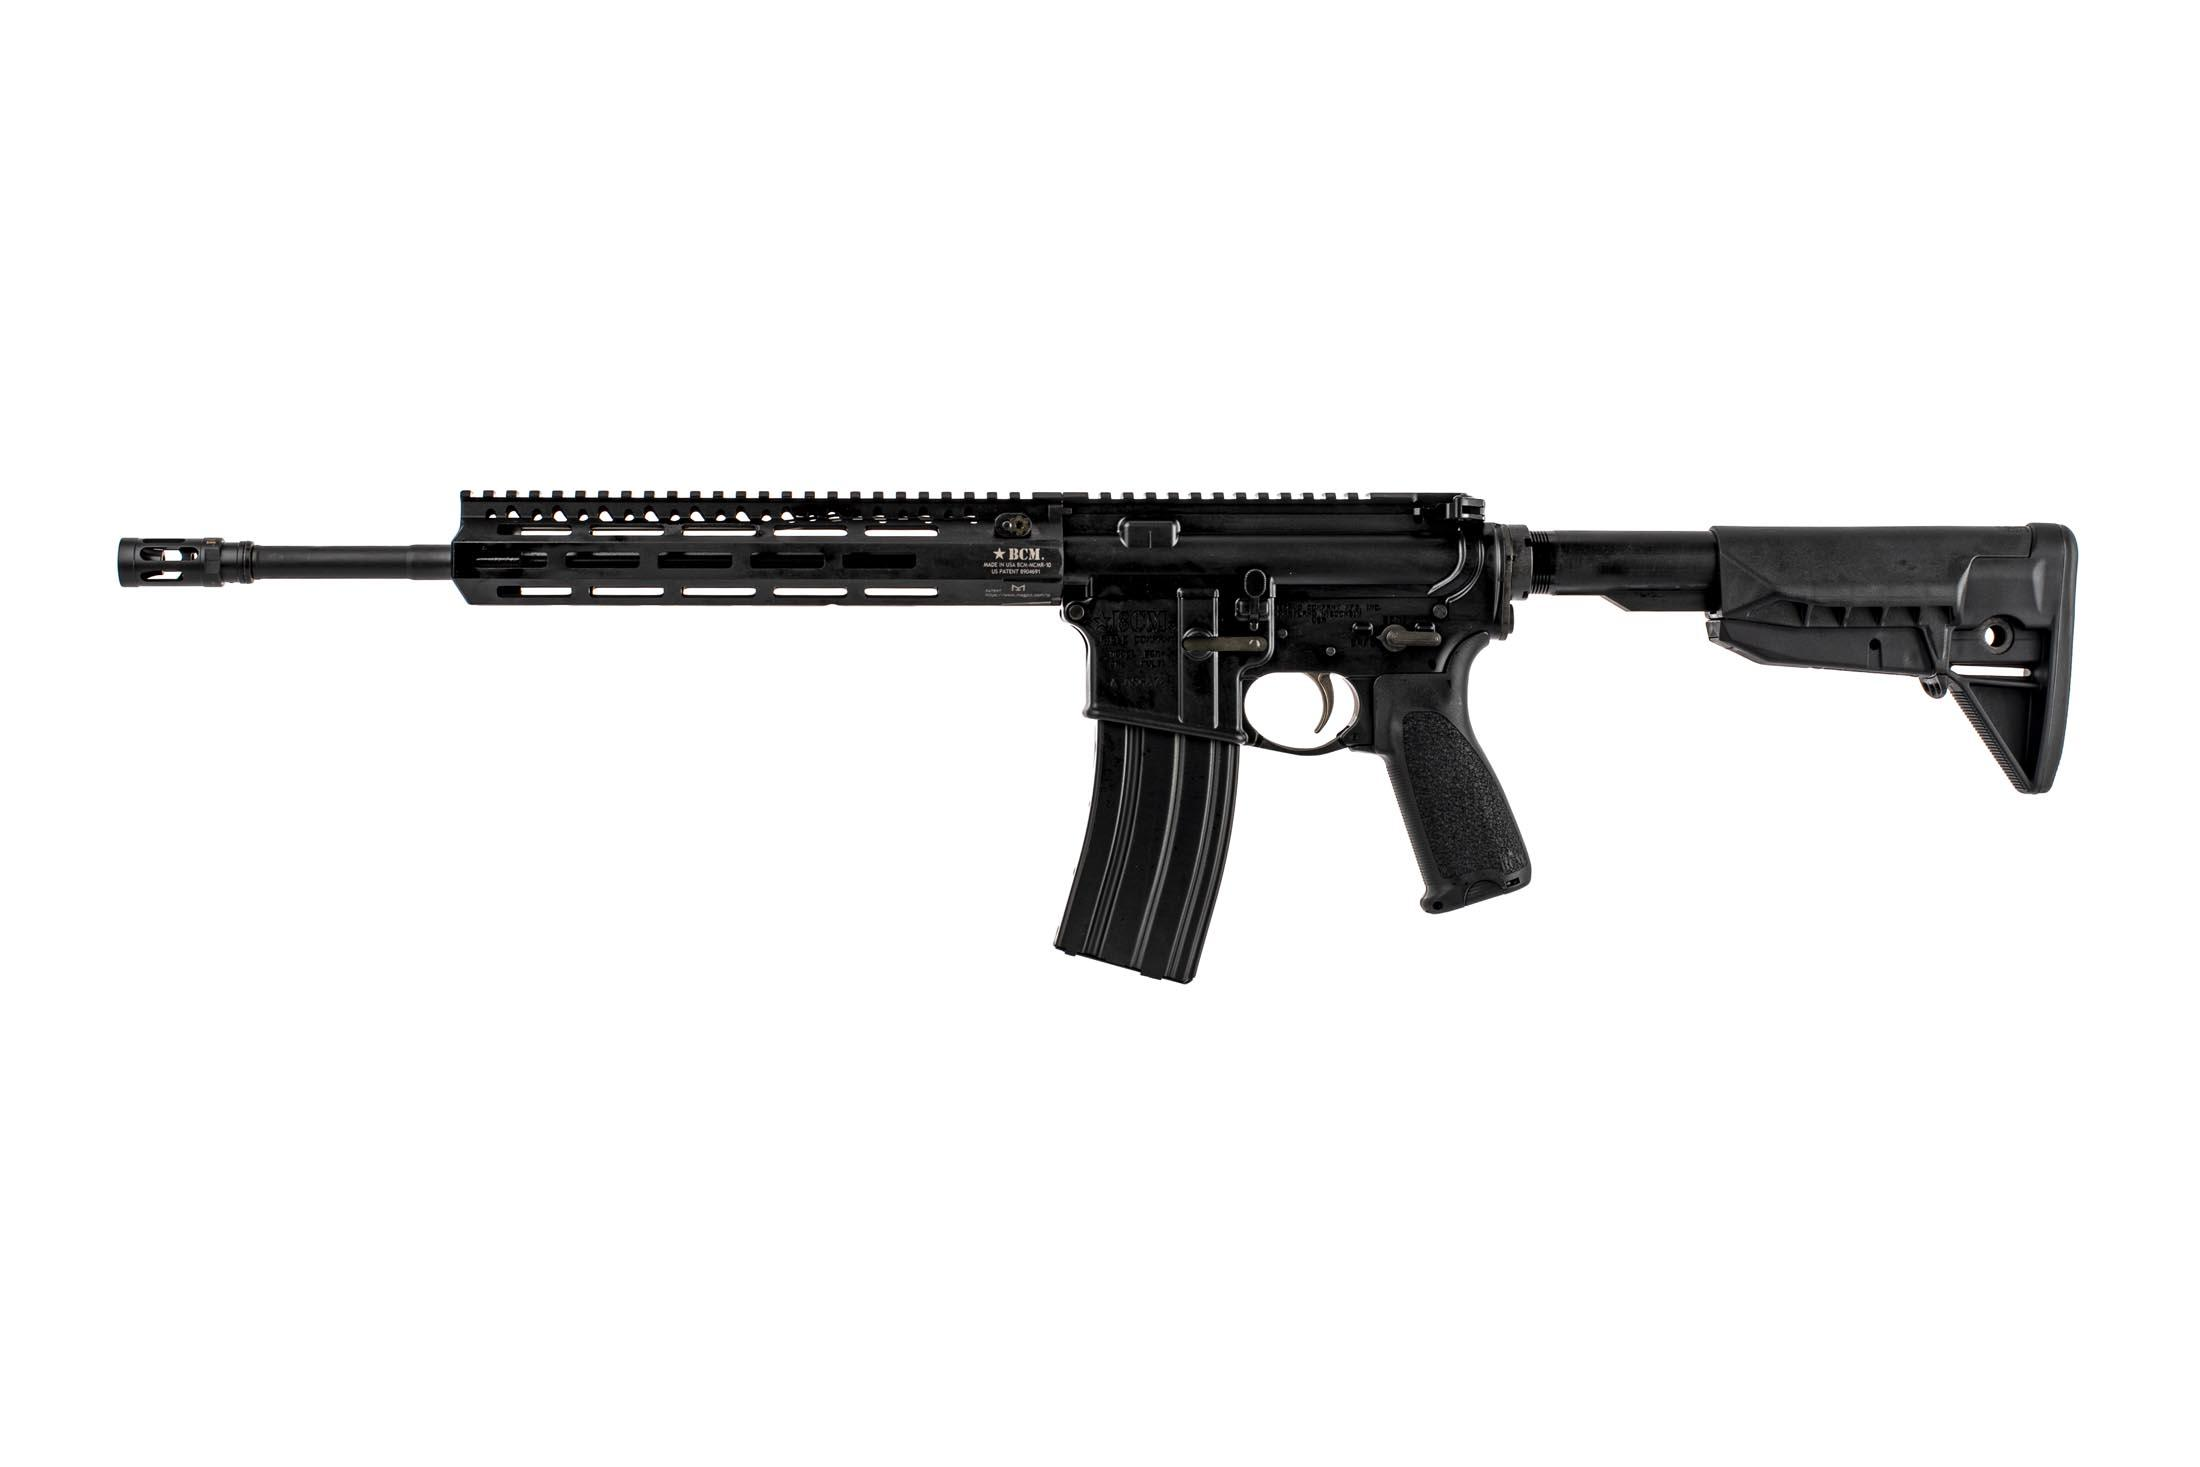 Bravo Company Manufacturing 14.5 RECCE-14.5 M-LOK lightweight rifle with mid-length gas system and BCM PNT trigger